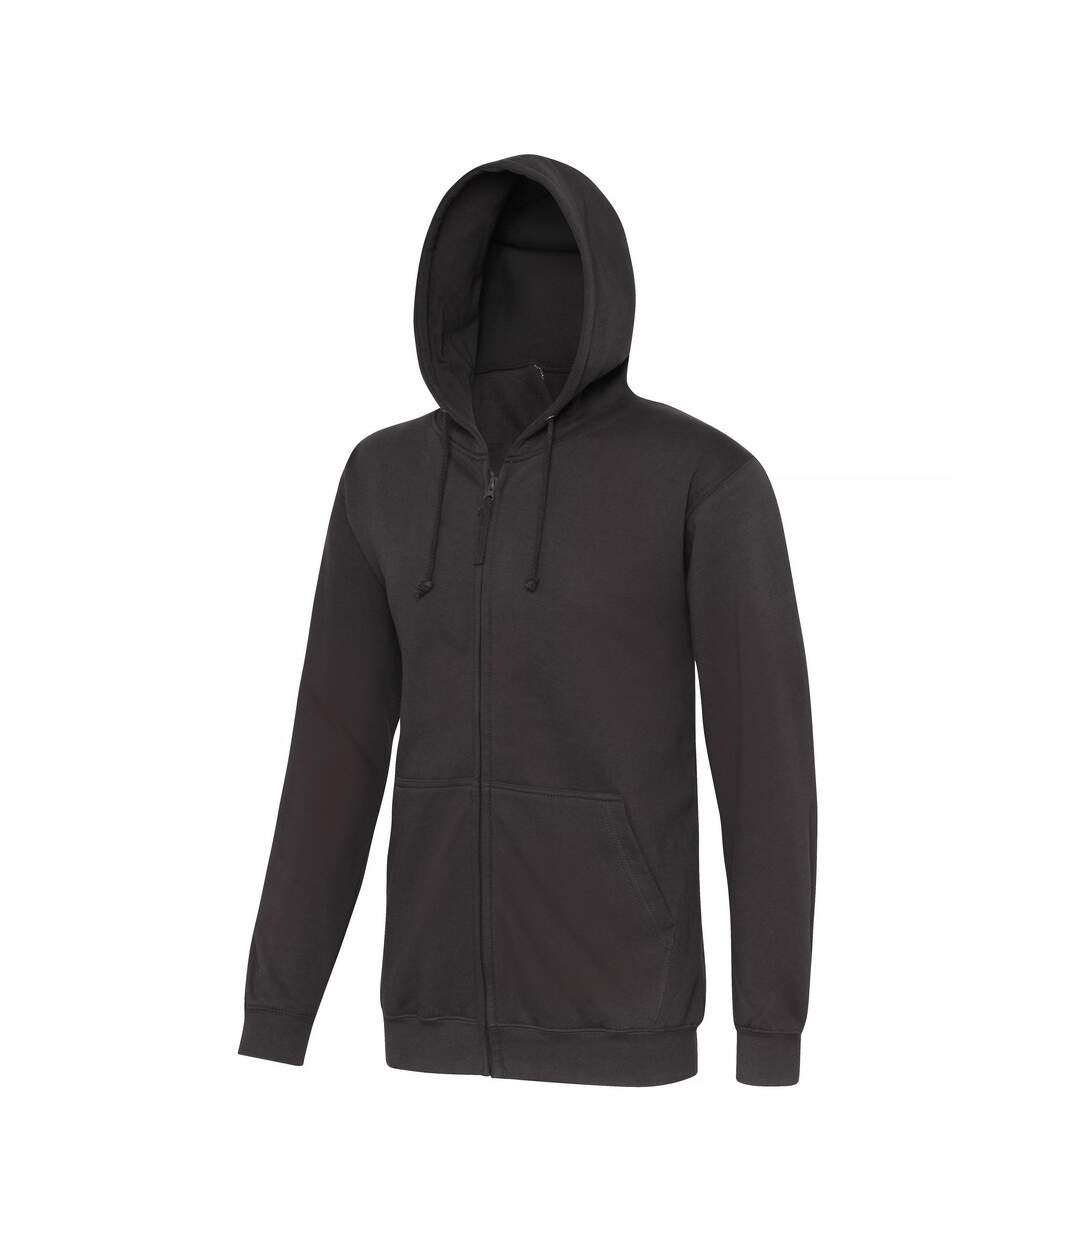 Awdis Plain Mens Hooded Full Zip Hoodie / Zoodie (Deep Black) - UTRW180